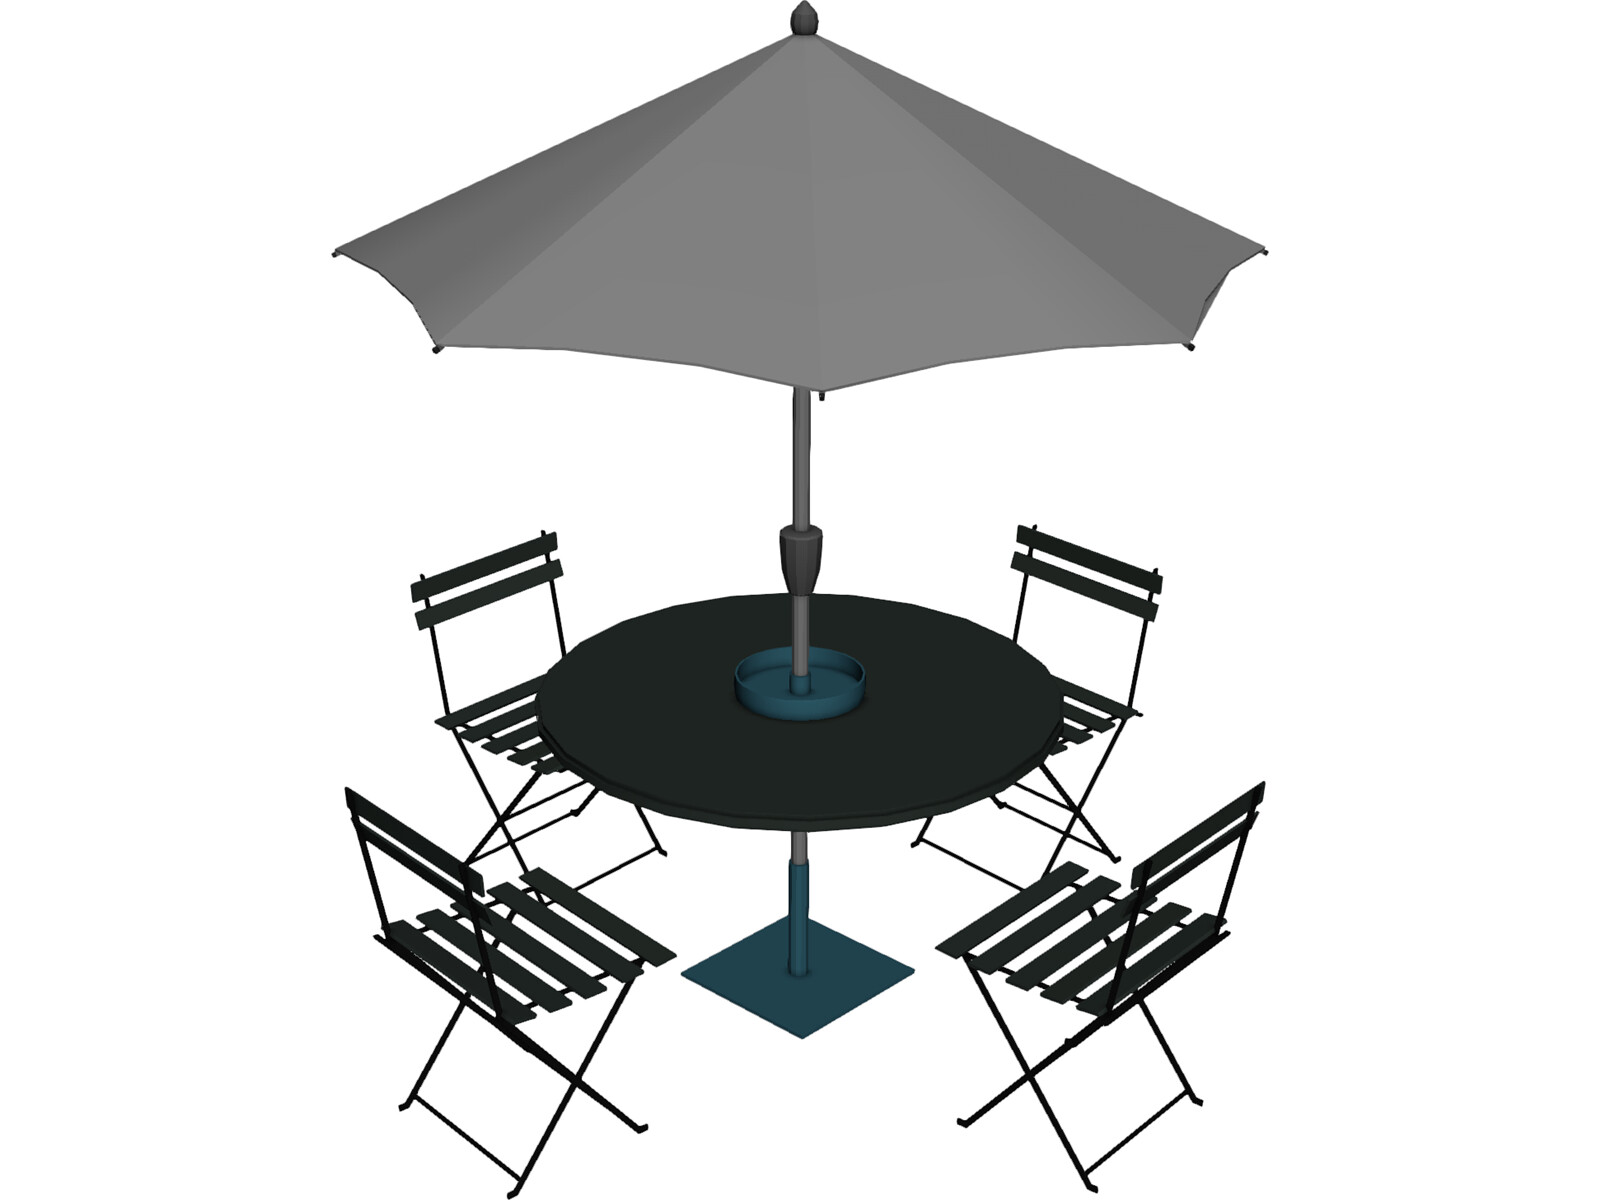 Table And Chairs With Beach Umbrella 3D Model  3D CAD Browser